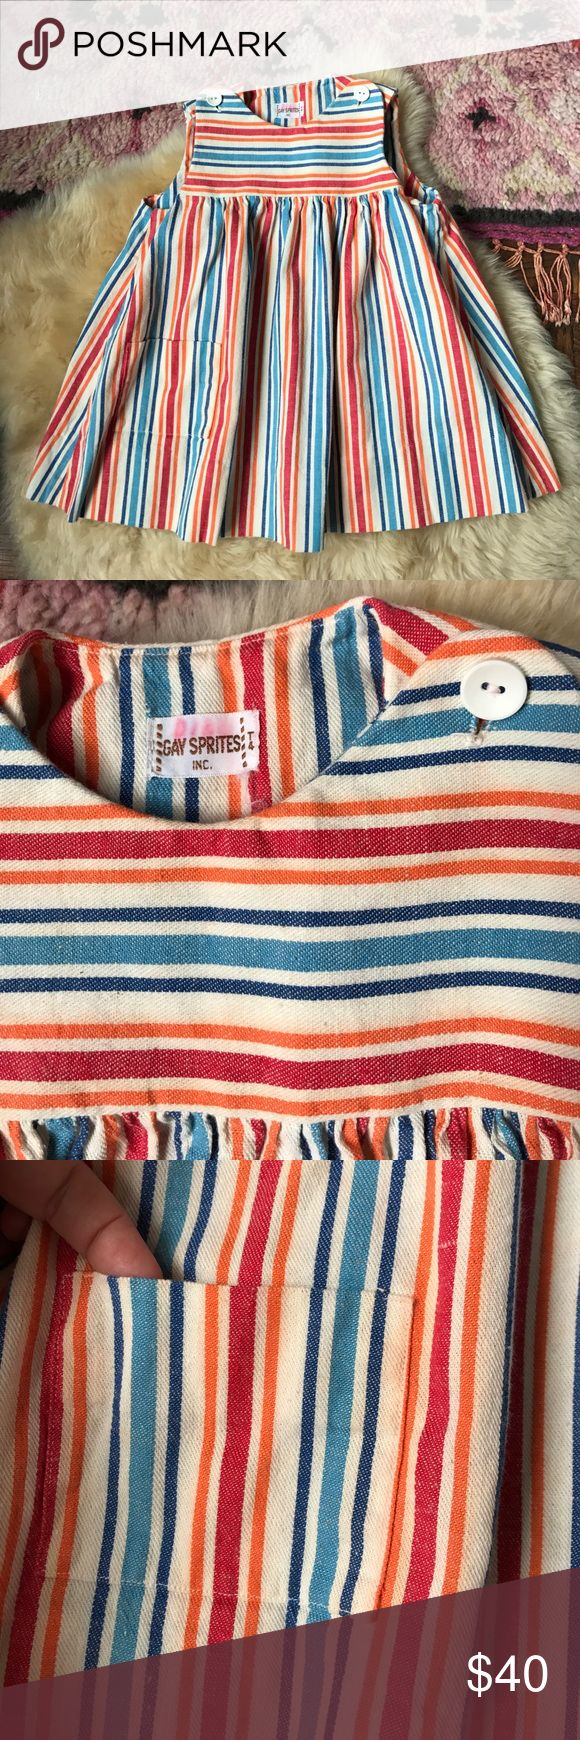 Vintage Girls Dress Striped! So sweet with an empire silhouette. In excellent condition with front pocket. Purchased from a dress maker in Austin Texas. Costume Baldor Dresses Casual